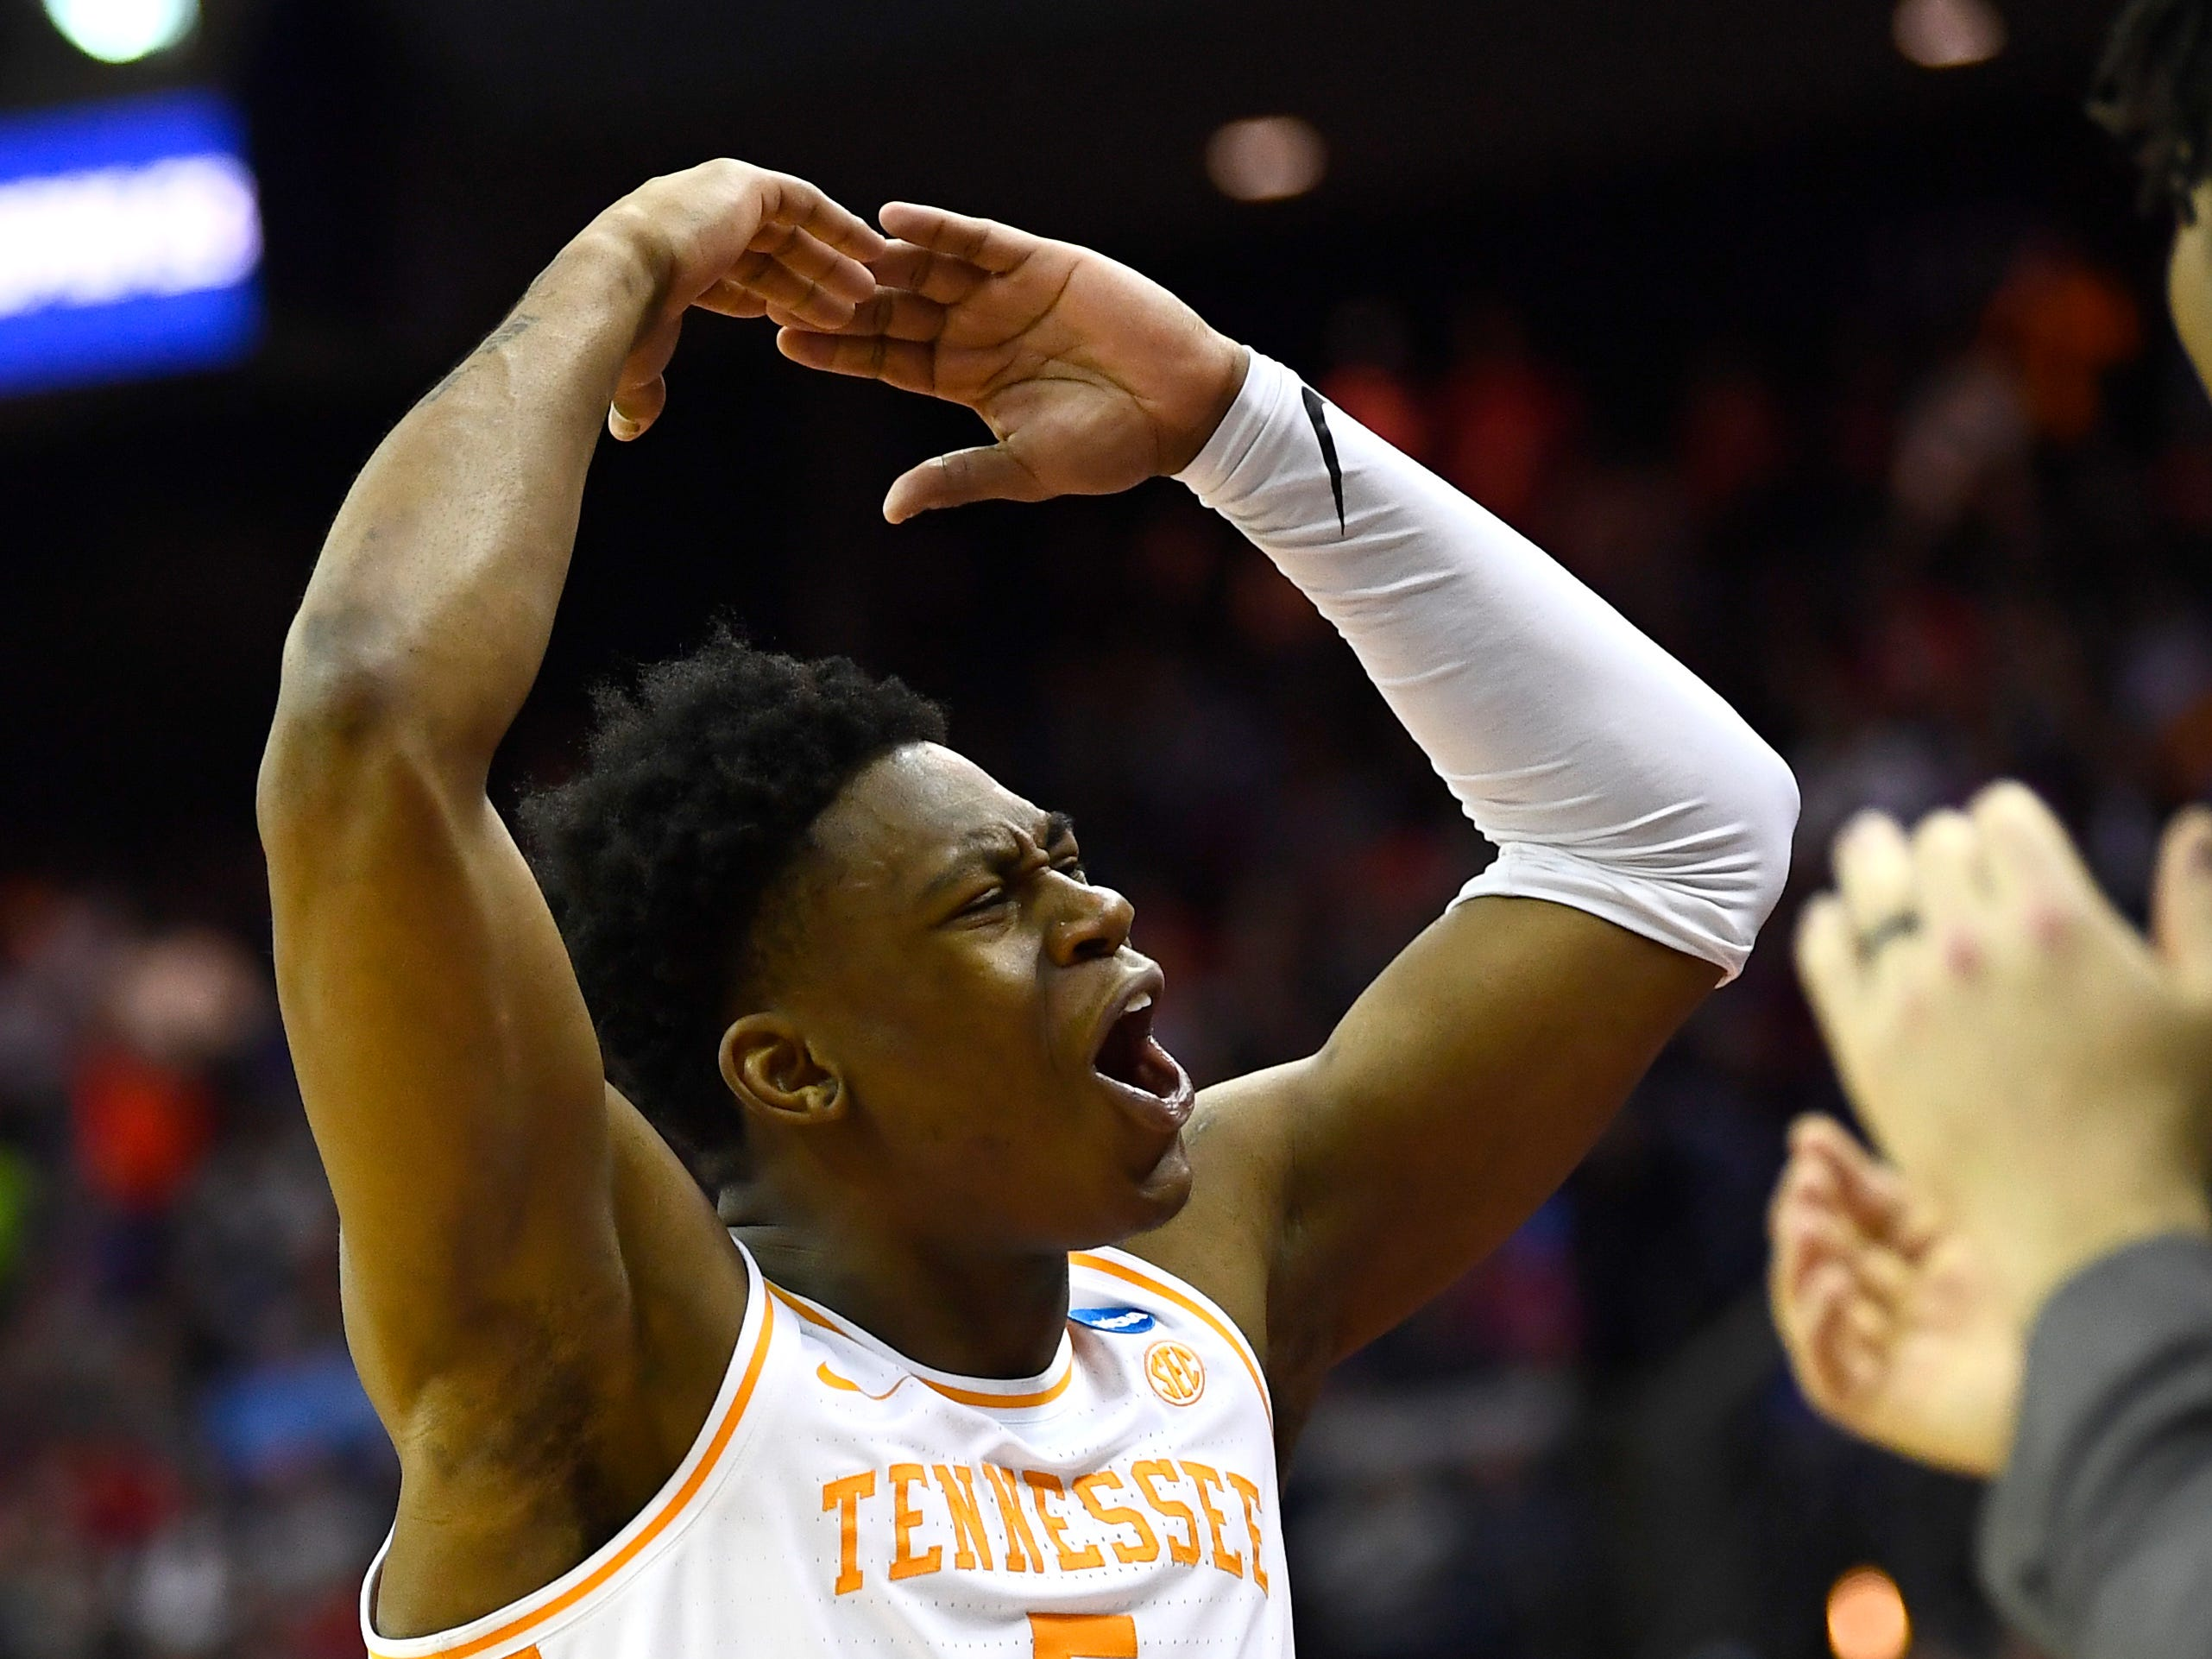 Tennessee guard Admiral Schofield (5) gestures for the crowd to get loud in their overtime win over the Iowa Hawkeyes in the second round of the NCAA Tournament at Nationwide Arena in Columbus, Ohio, Sunday, March 24, 2019.